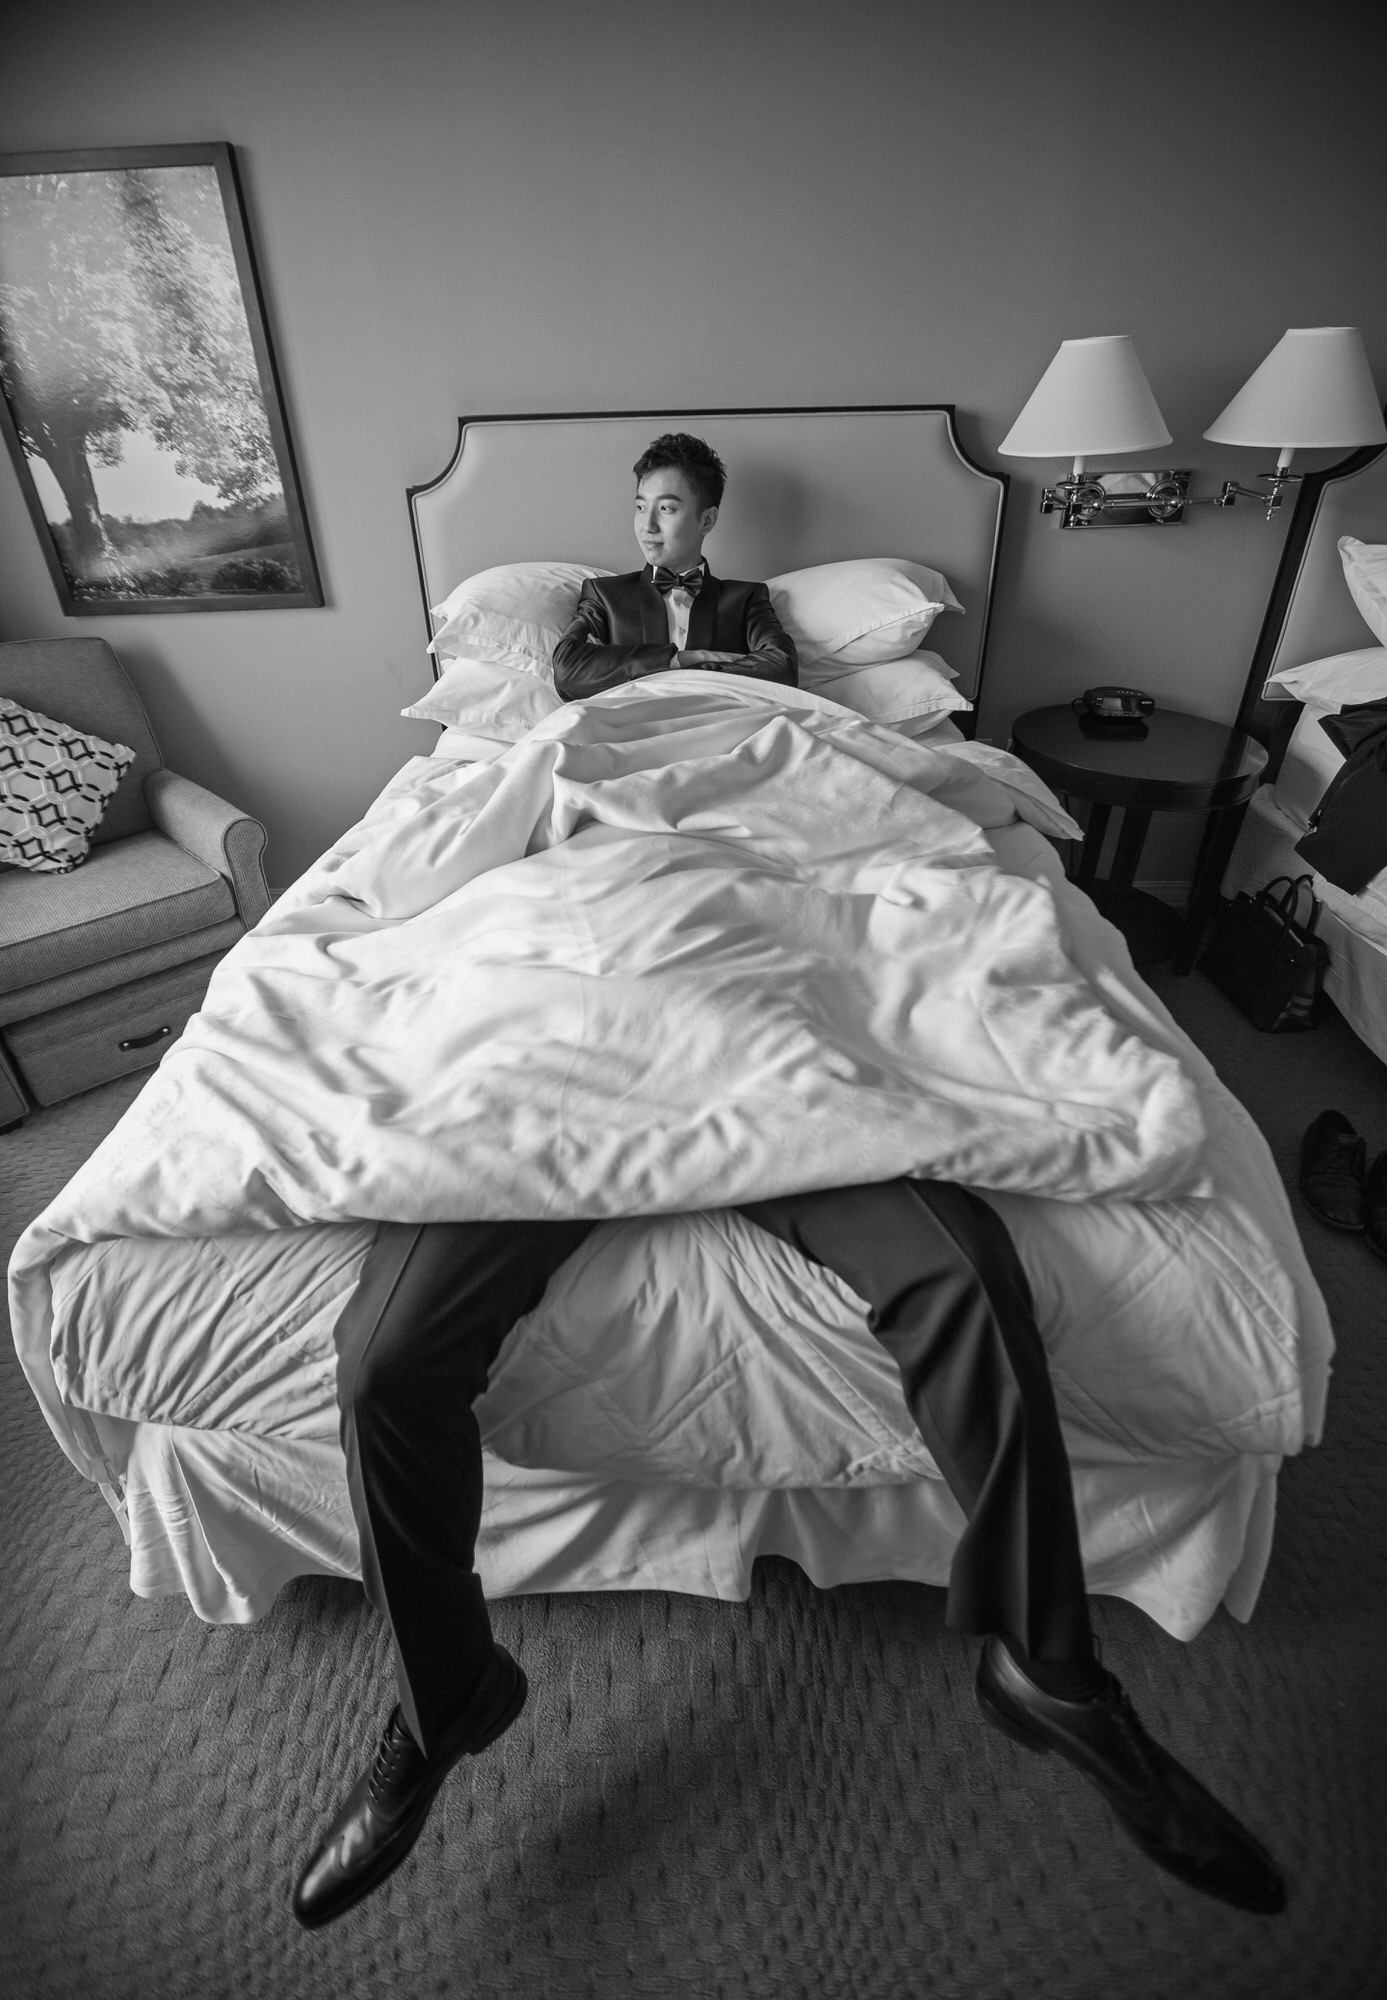 Trick of the eye photo of groom in bed by Ken Pak - Washington D.C.